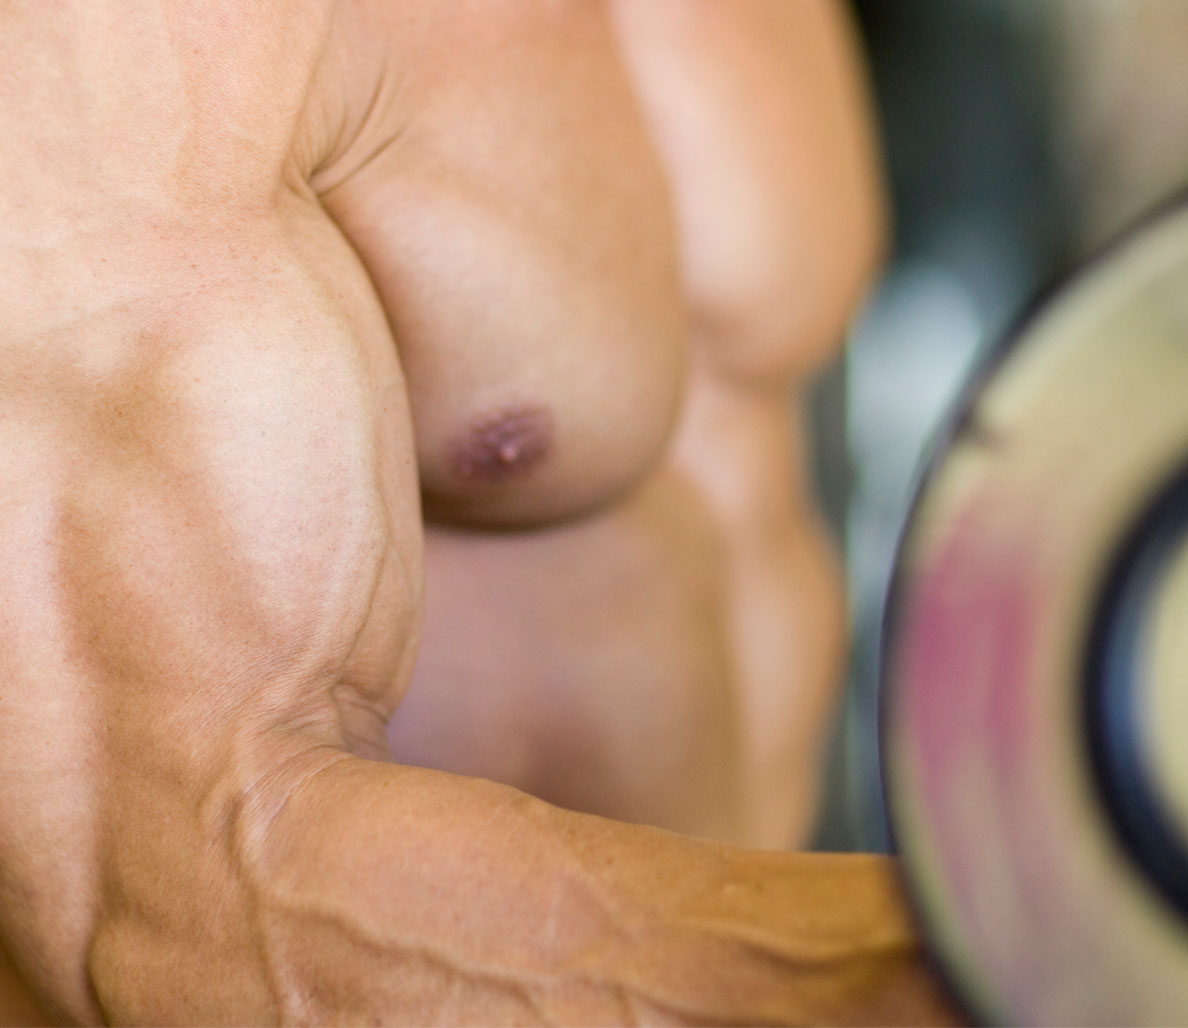 how to get your veins to show